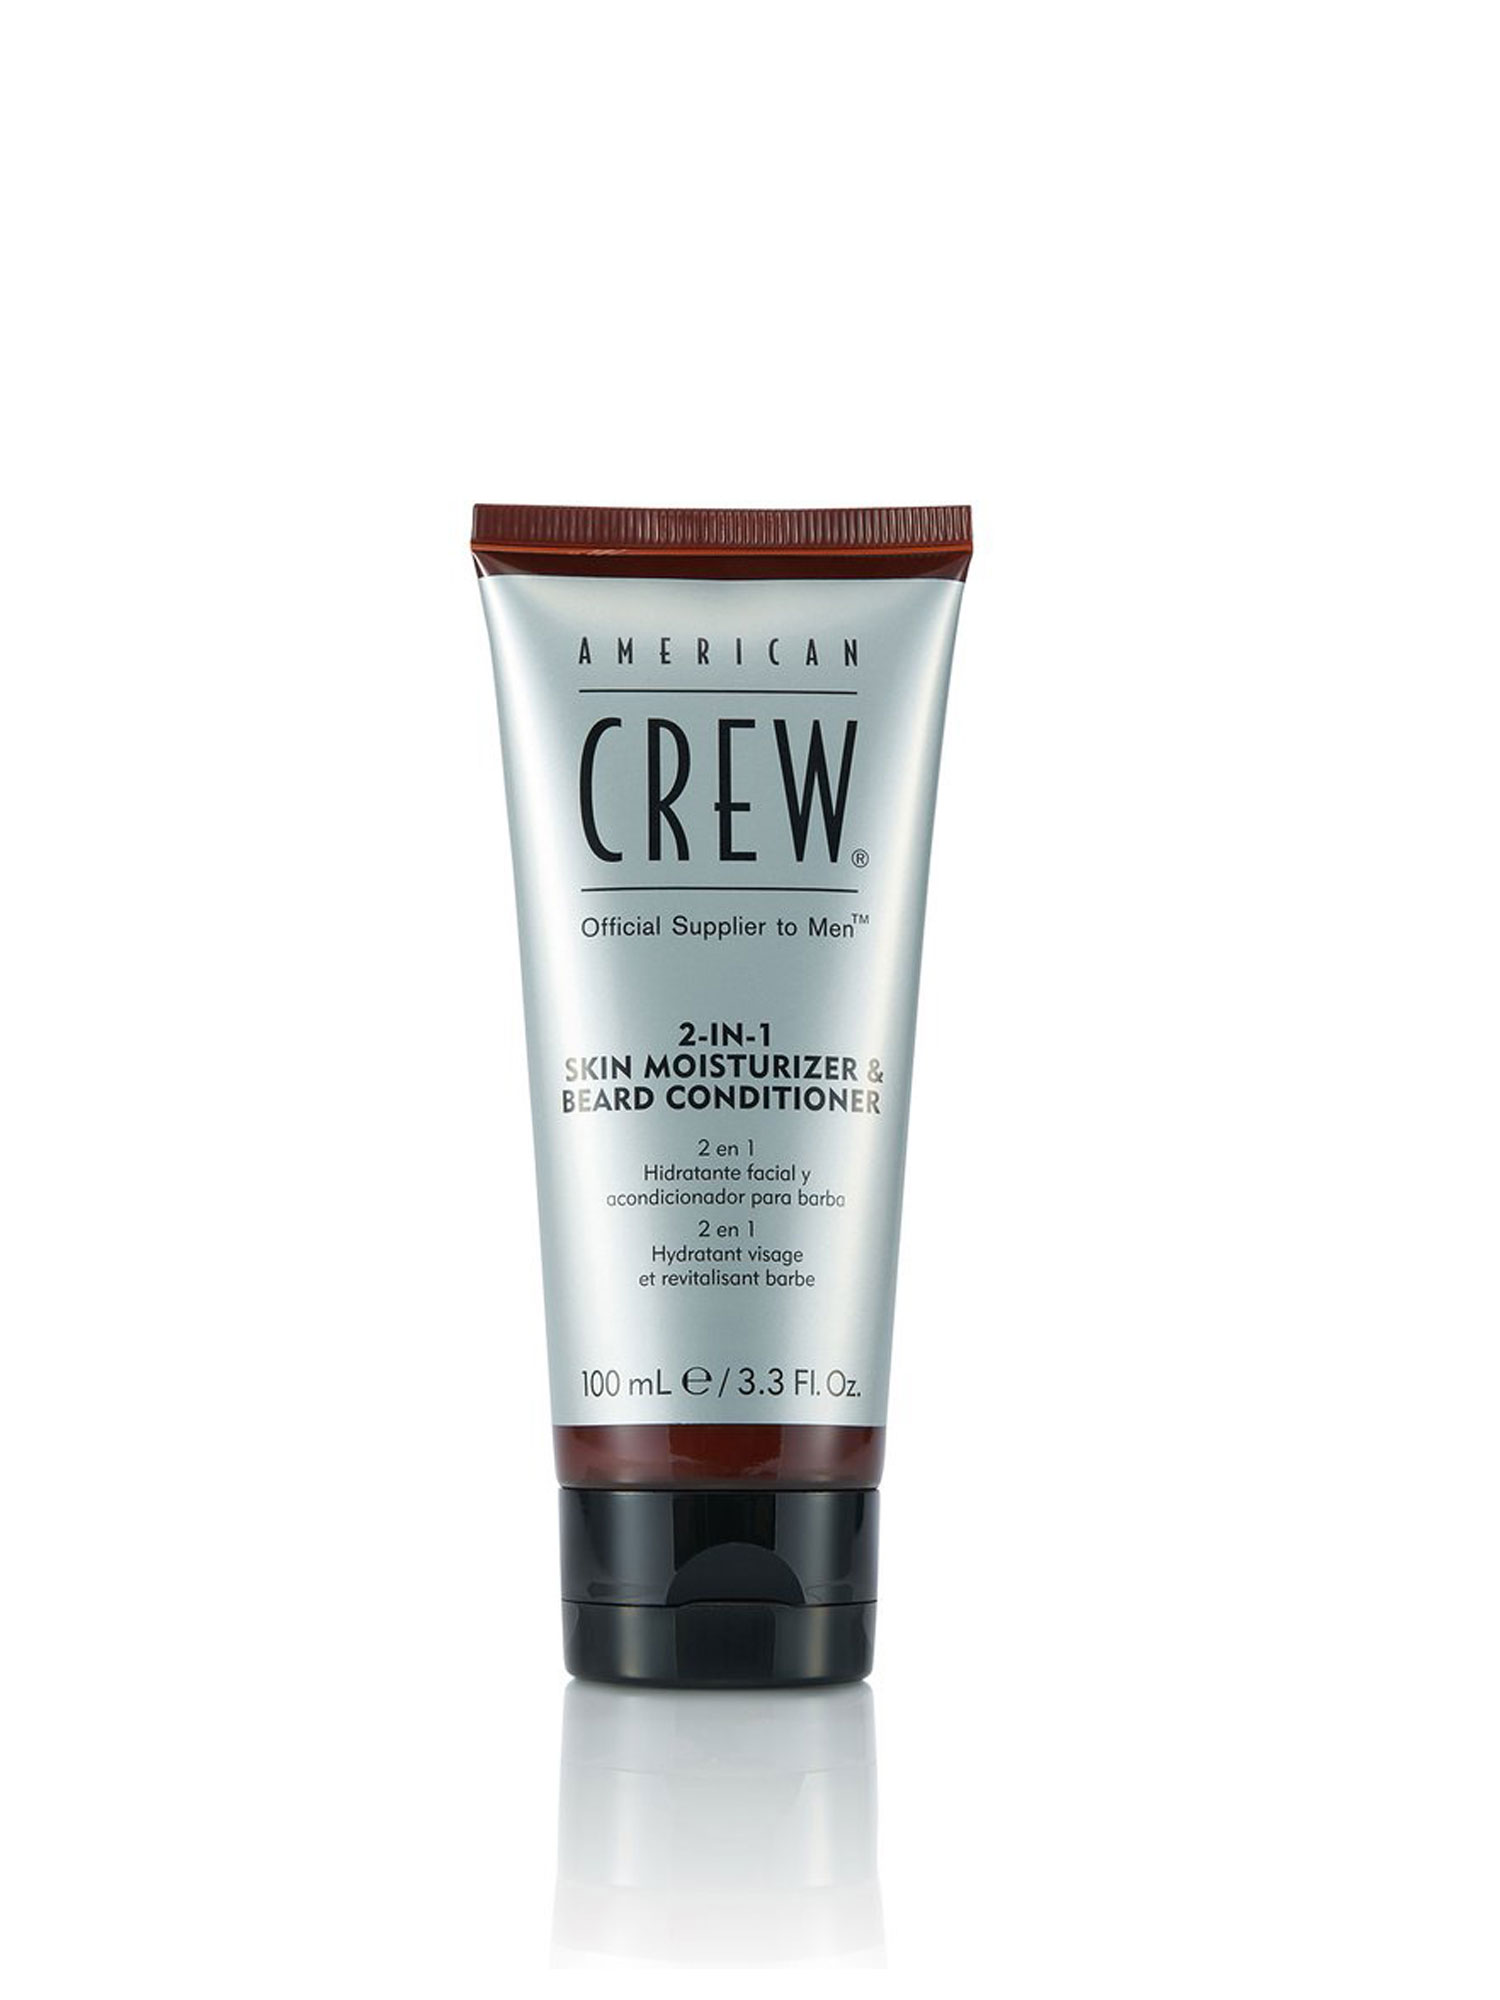 American Crew 2-in-1 Skin Moisturizer and Beard Conditioner